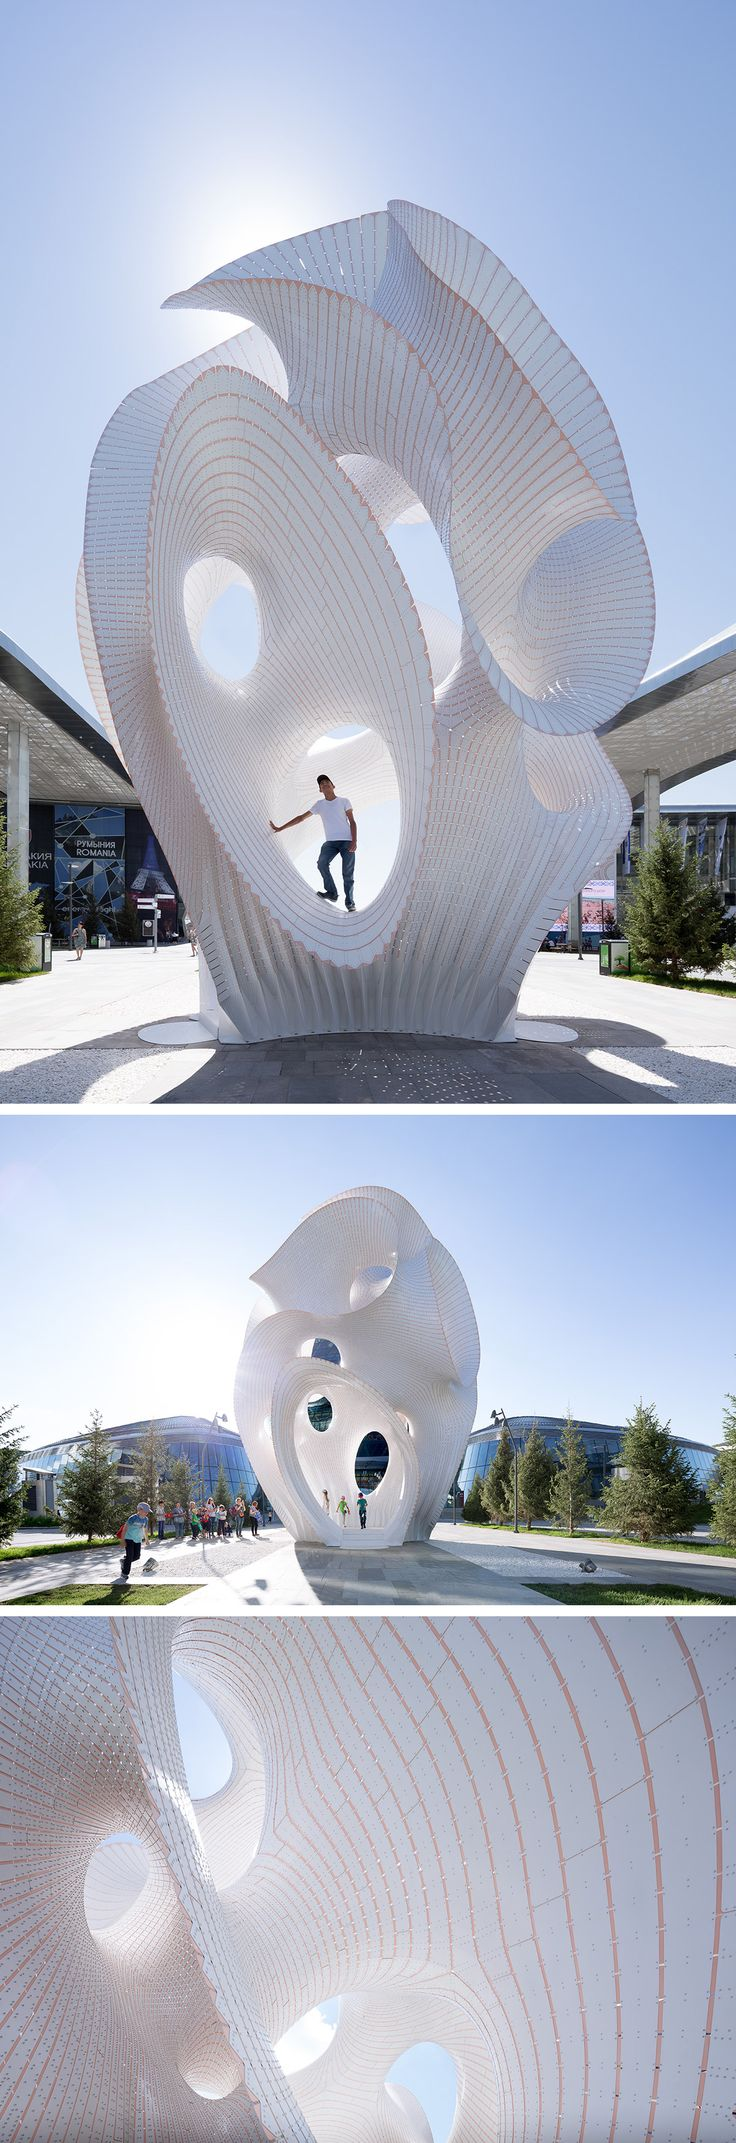 A Towering 4-Story Organic Structure Built From Material as Thin as a Coin